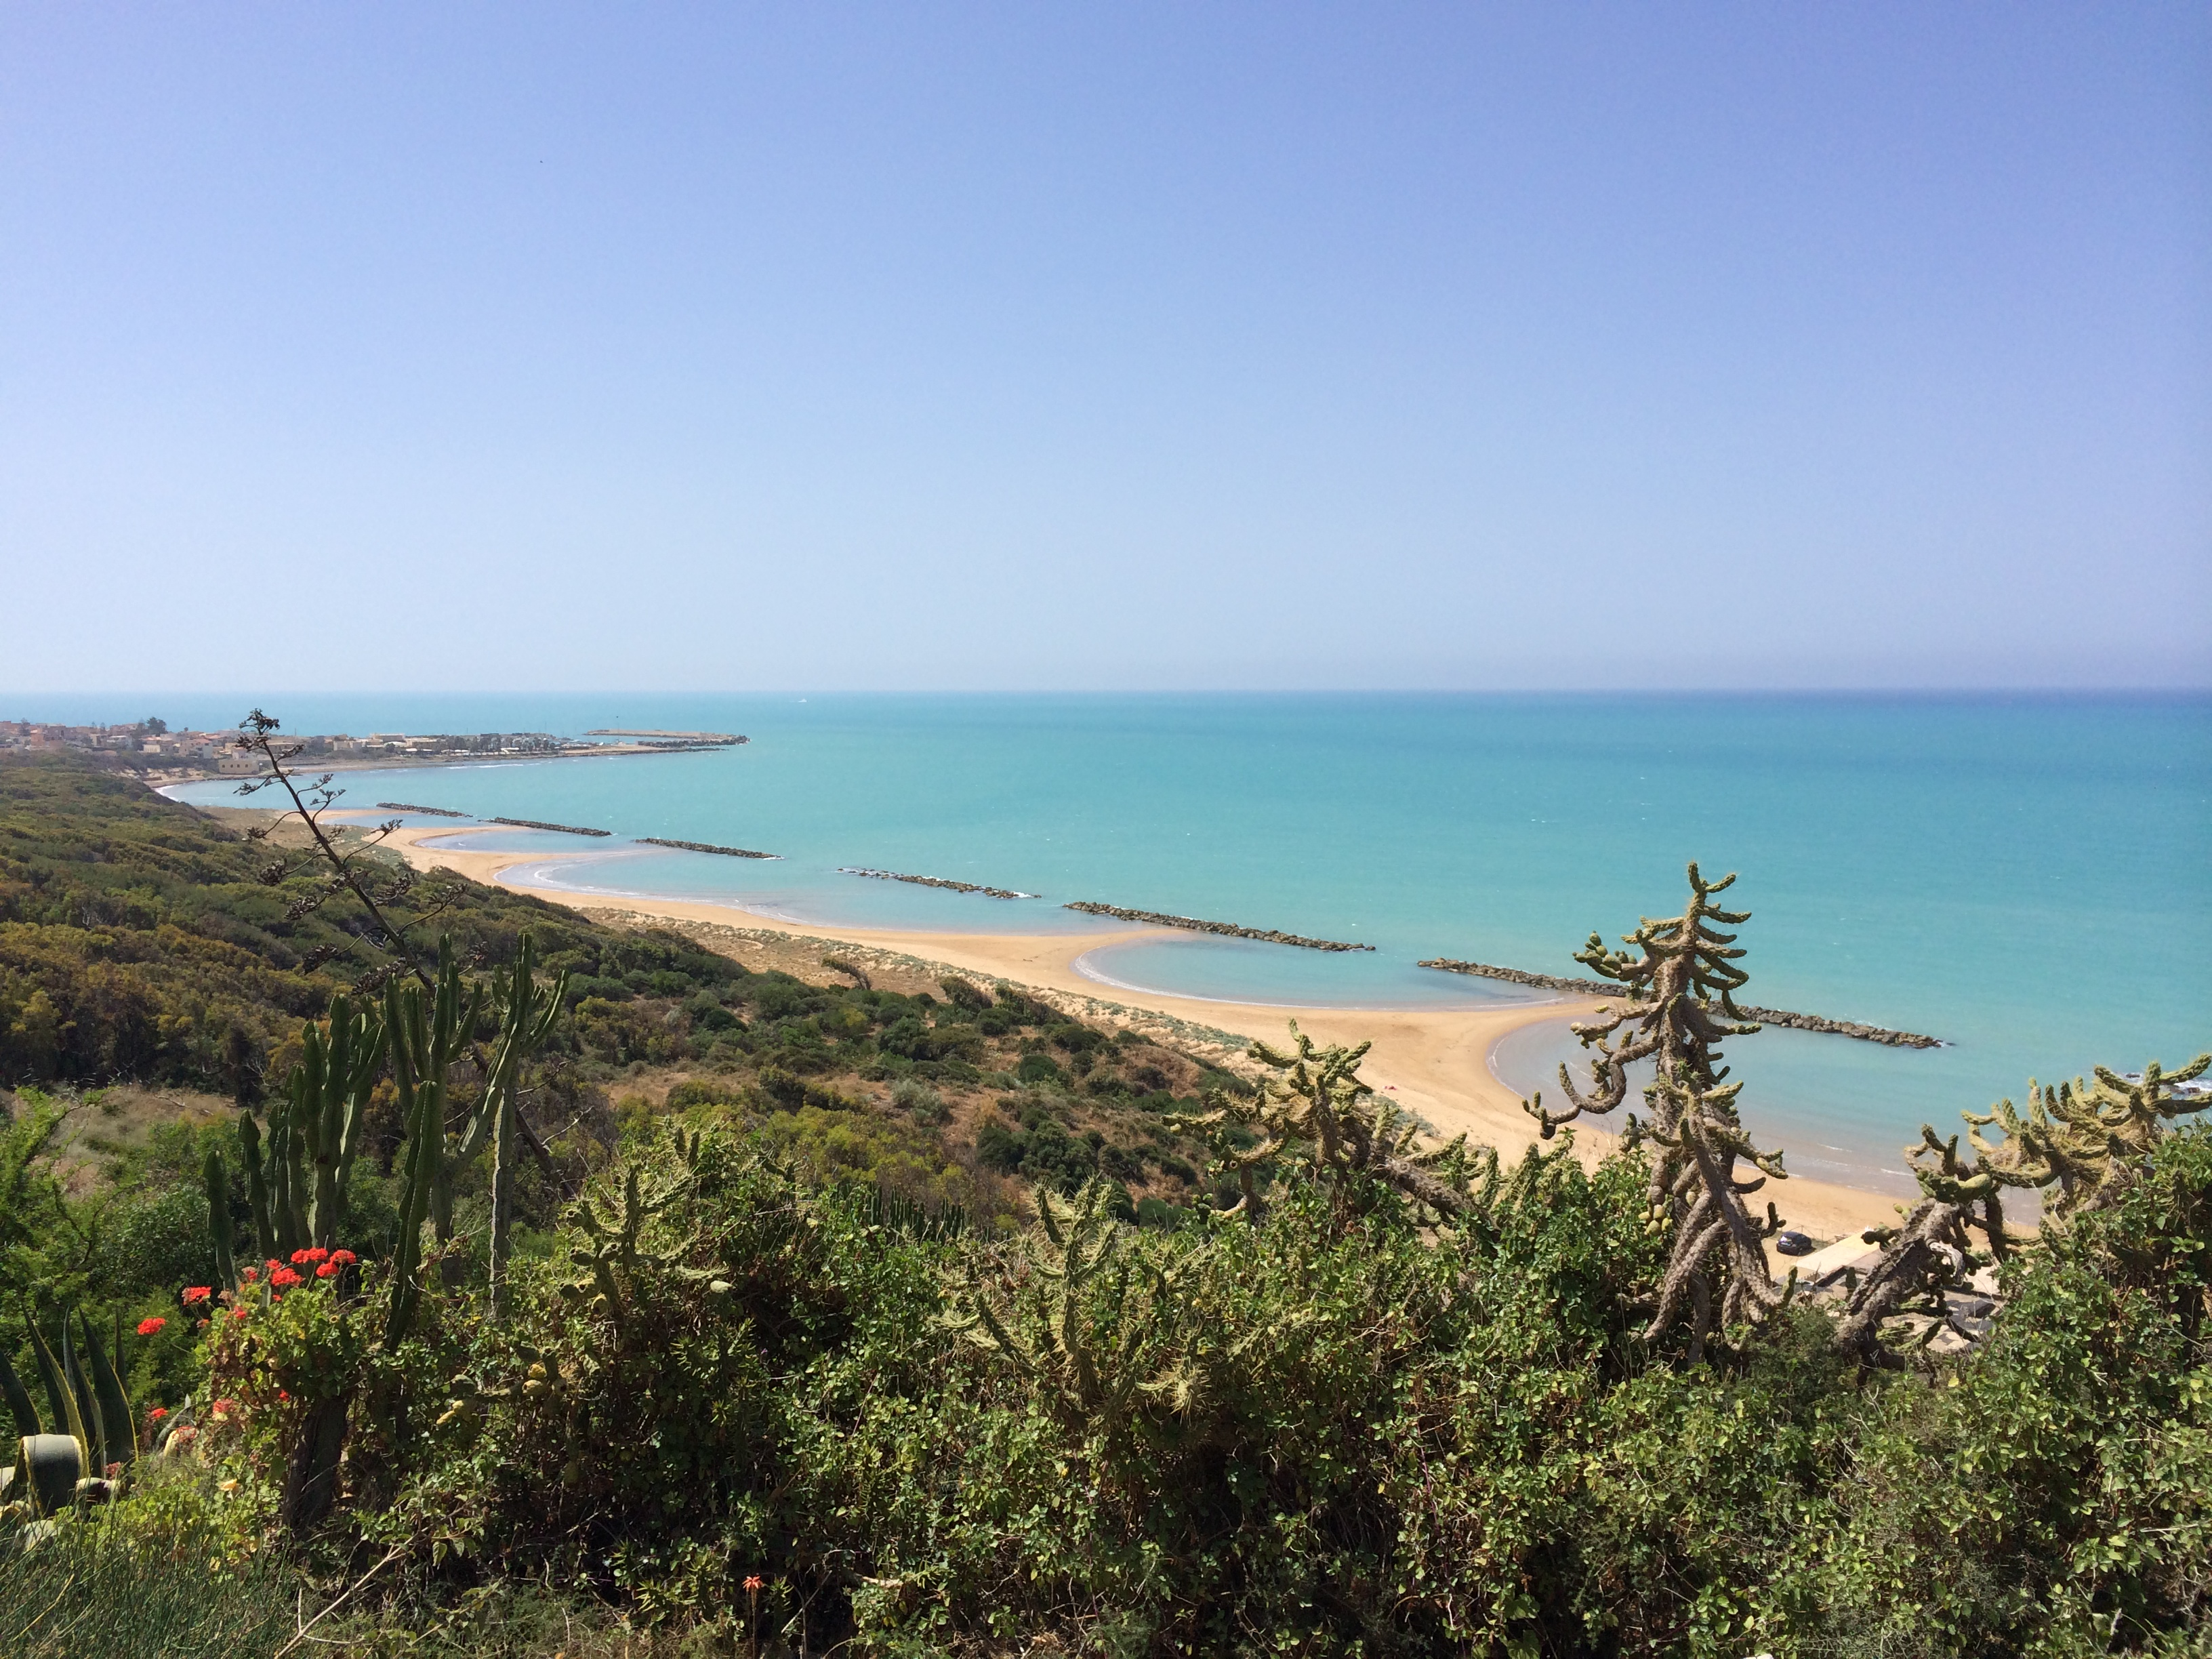 Beaches at Agrigento